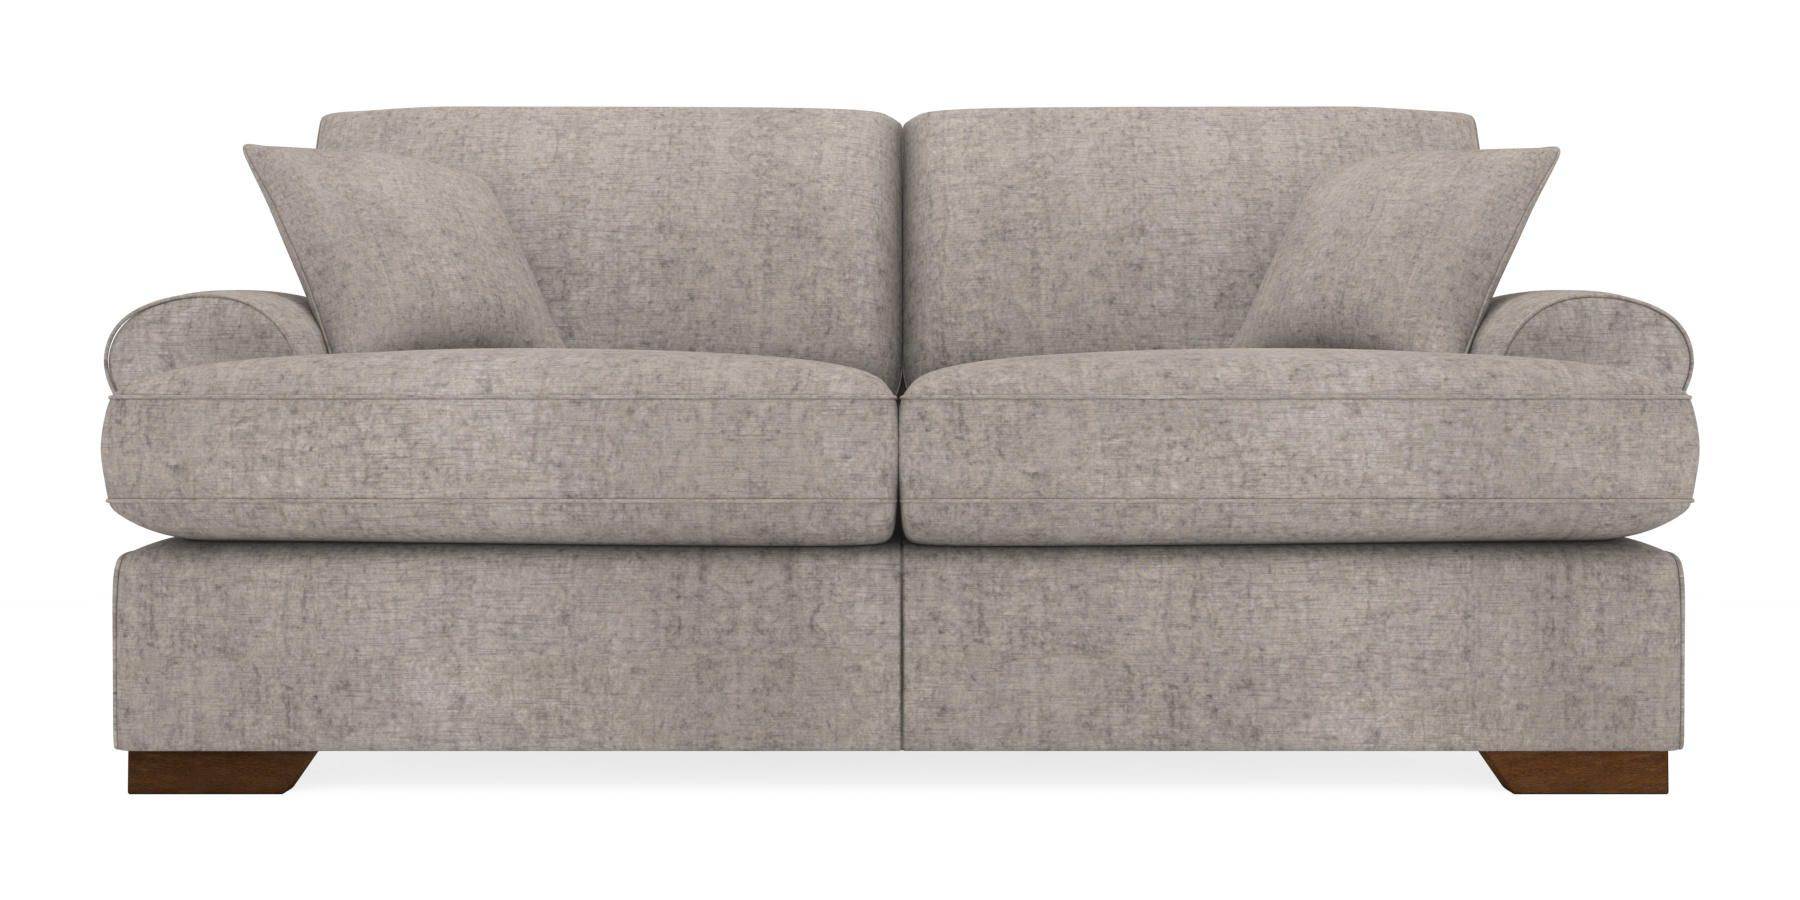 Genial Buy Arbury Large Sofa (3 Seats) Antique Velvet Mid Dove Large Square Angle    Standard From The Next UK Online Shop